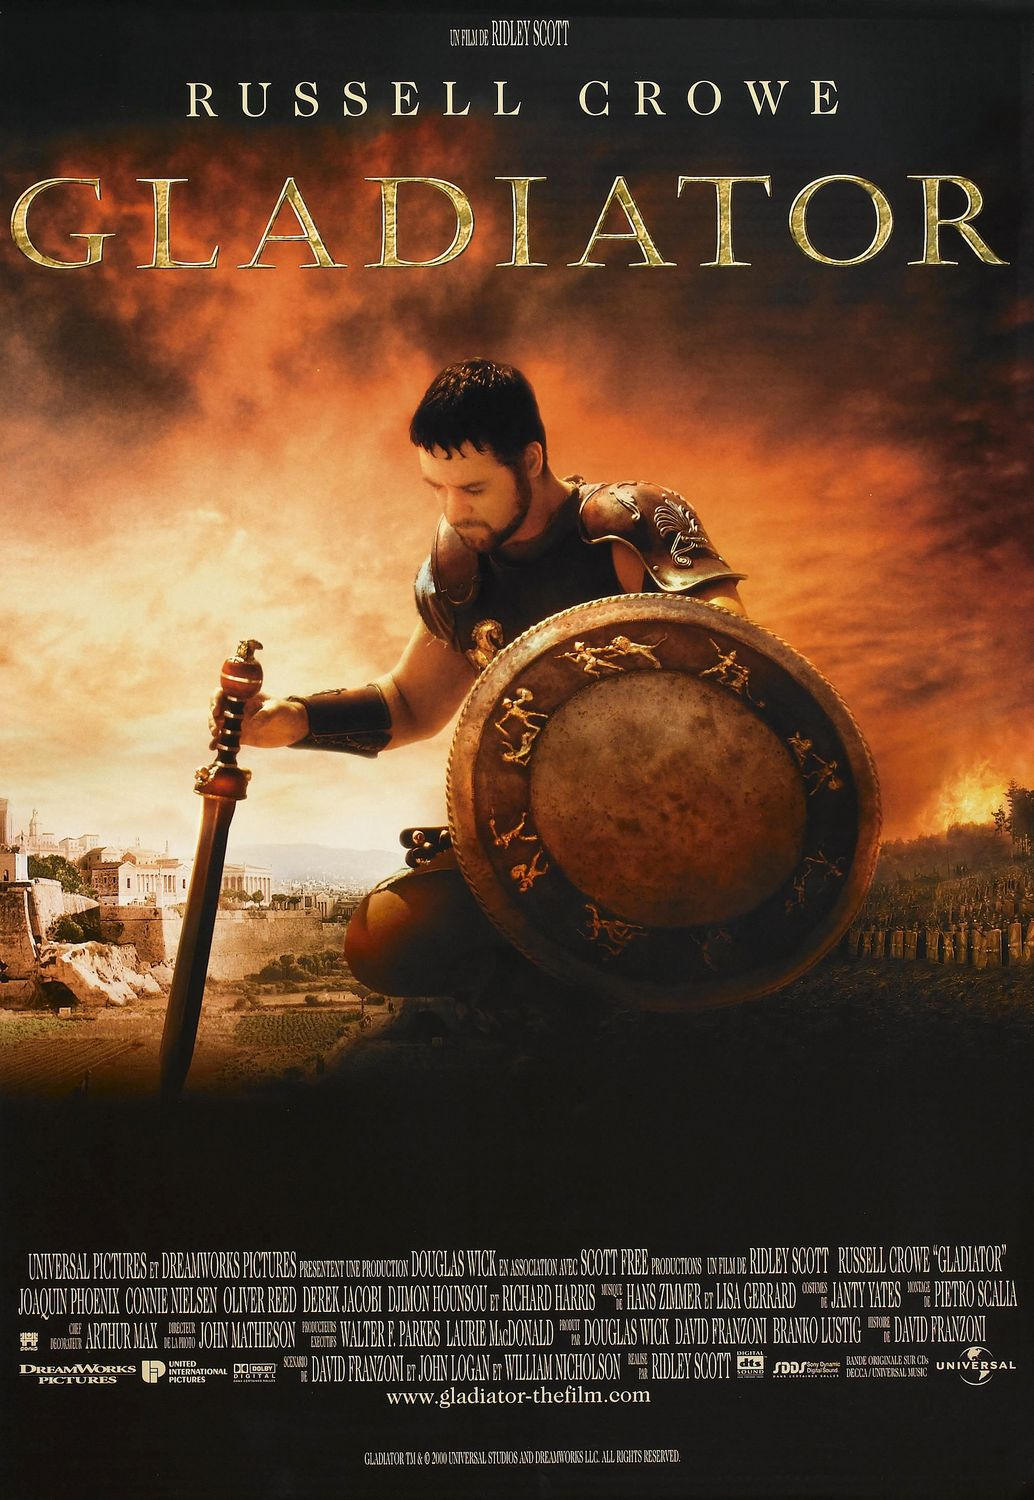 """gladiator essay The movie """"gladiator"""" may have played a part in instigating people to know more about gladiators and could even have given students and researchers something to write about in a gladiator essay."""